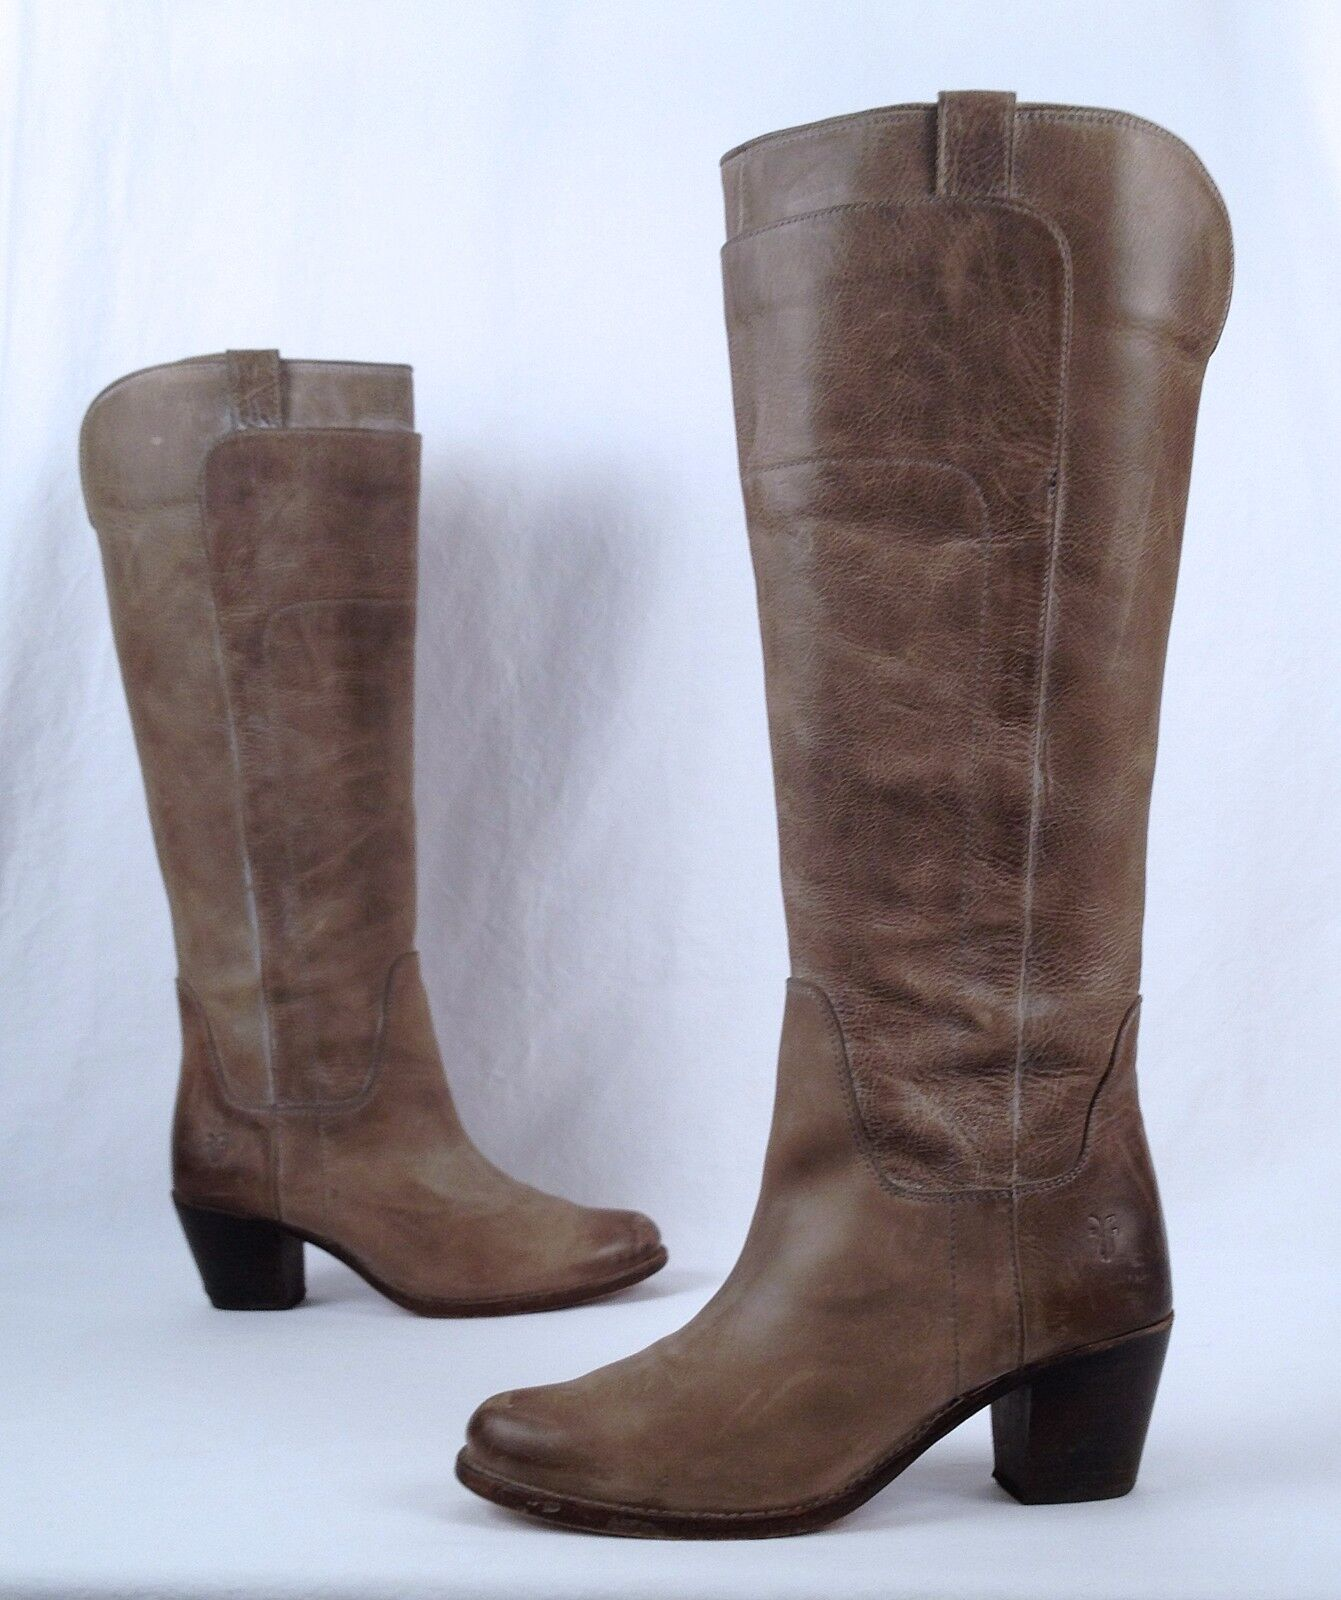 Frye 'Jackie' Tall Riding Boot- Taupe- Size 8 B   (B32)